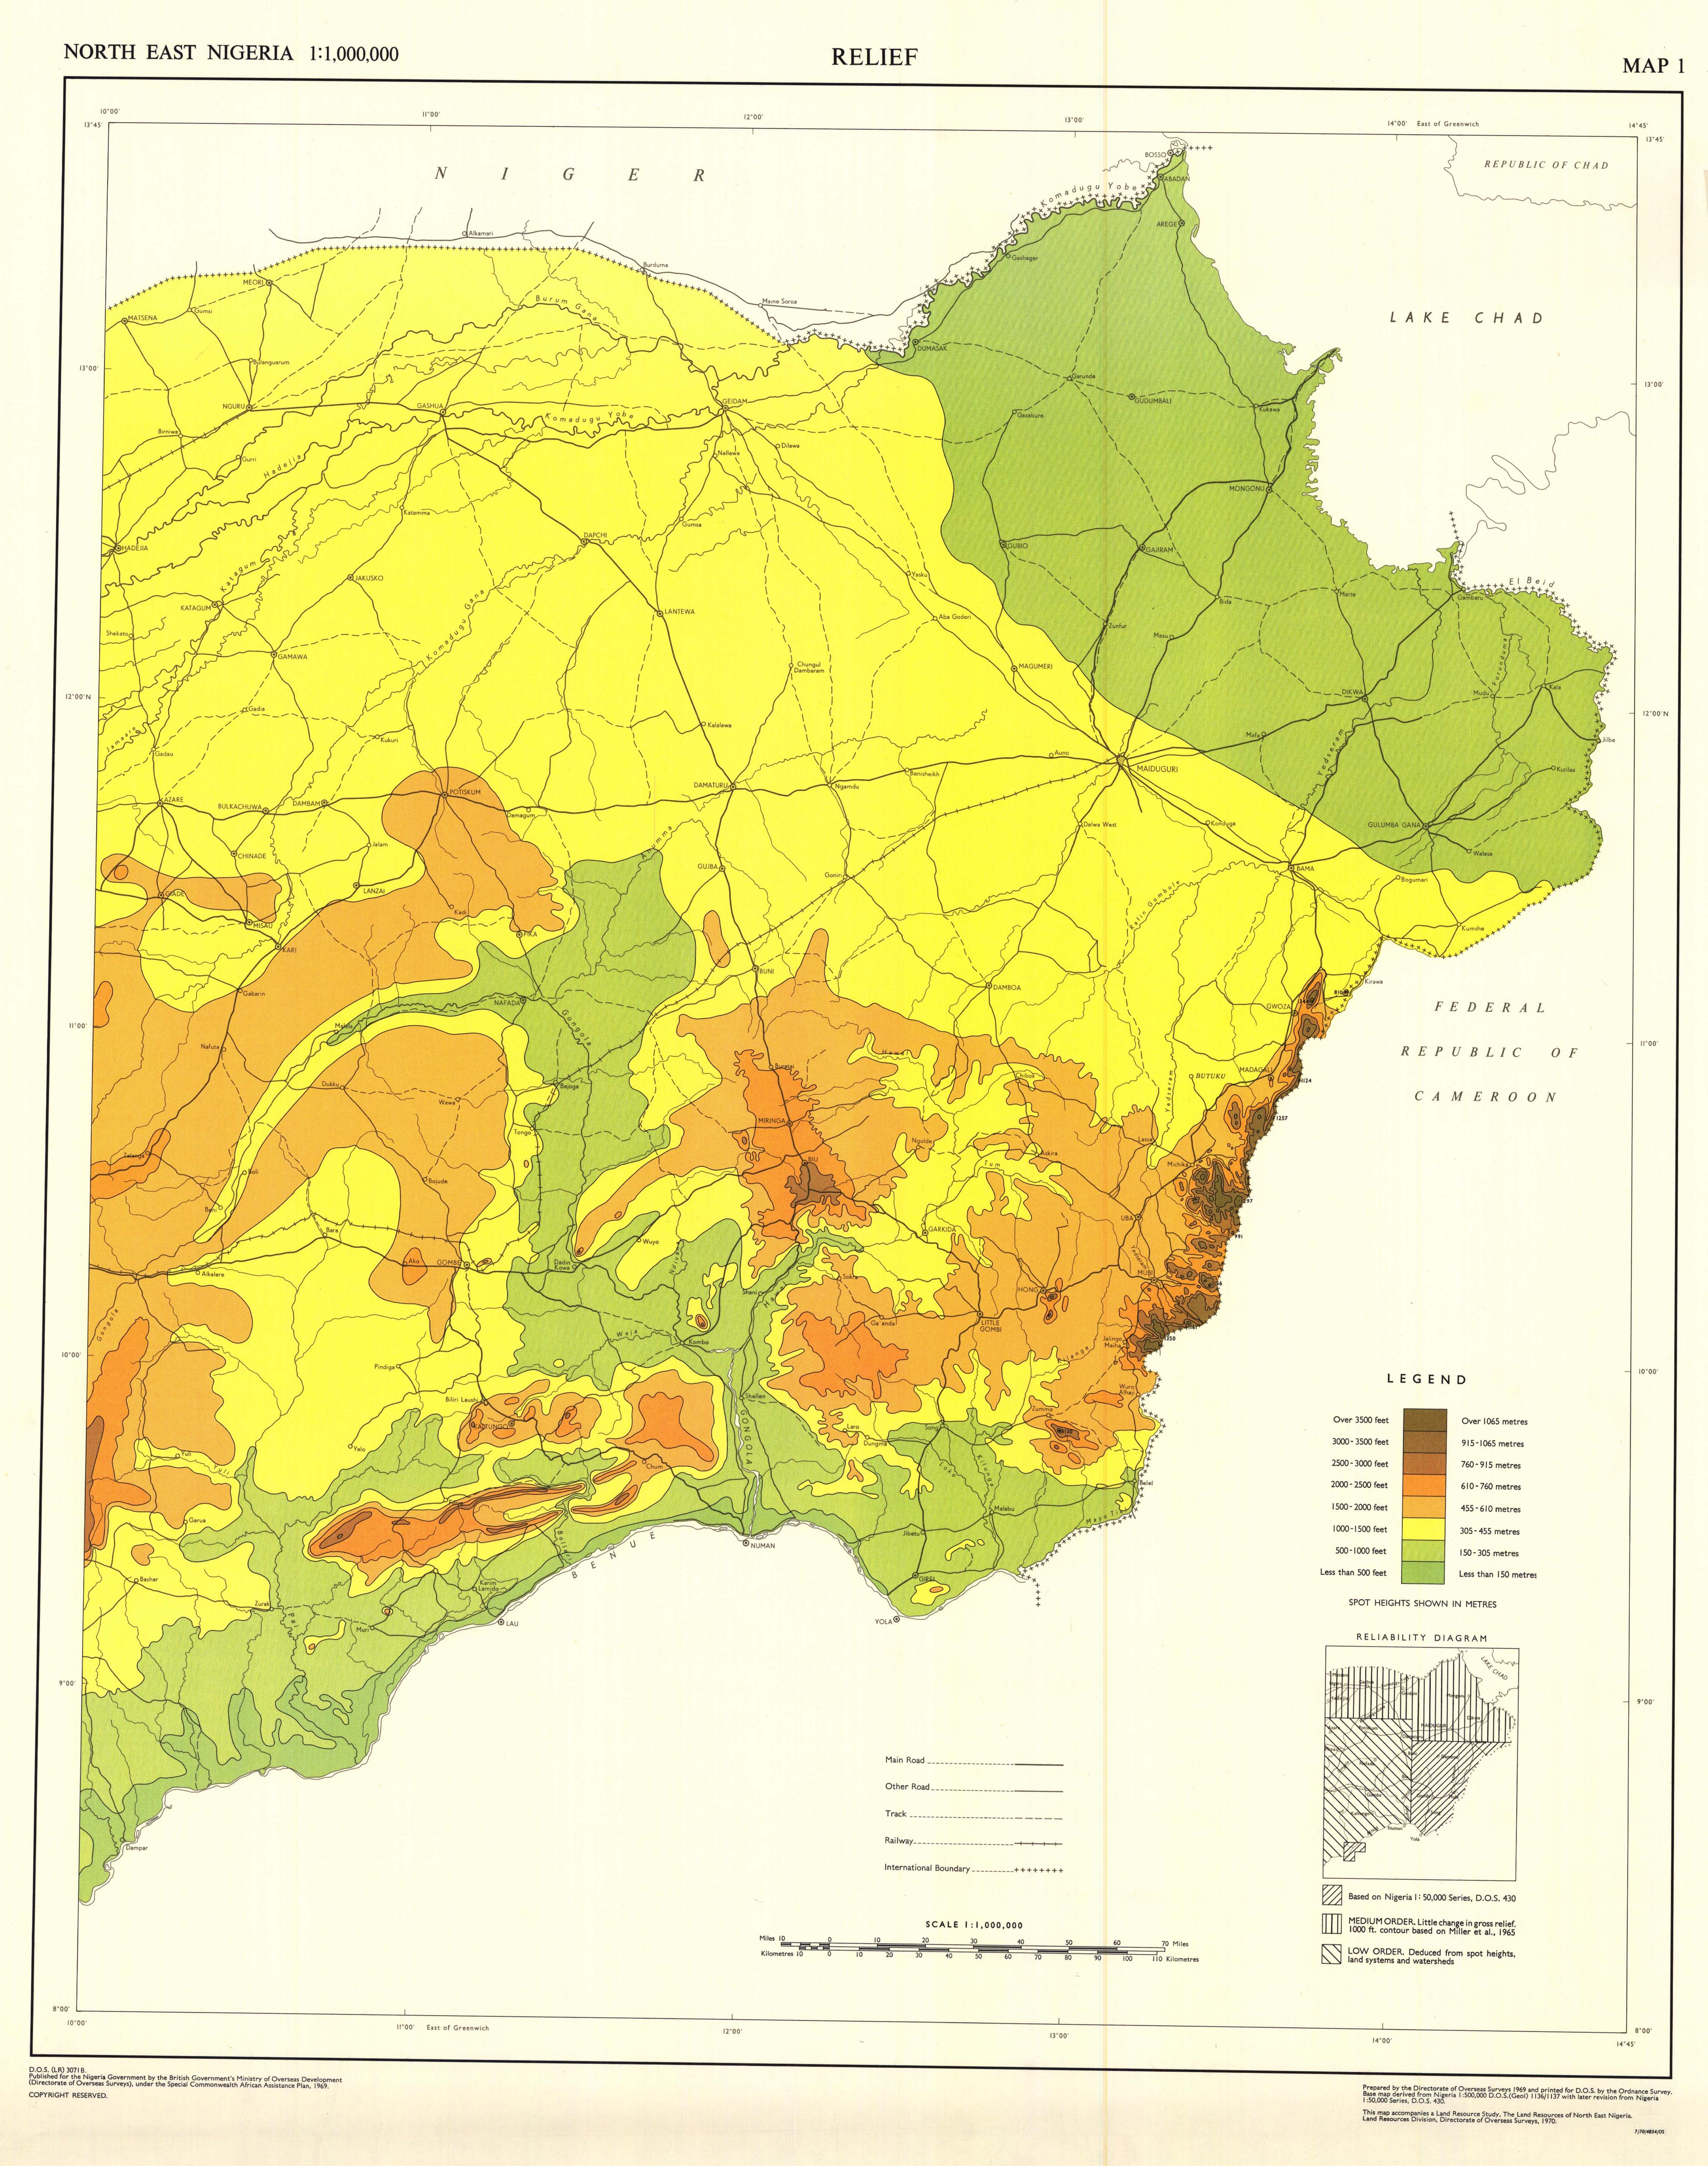 North east nigeria relief map 1 esdac european commission download gumiabroncs Choice Image